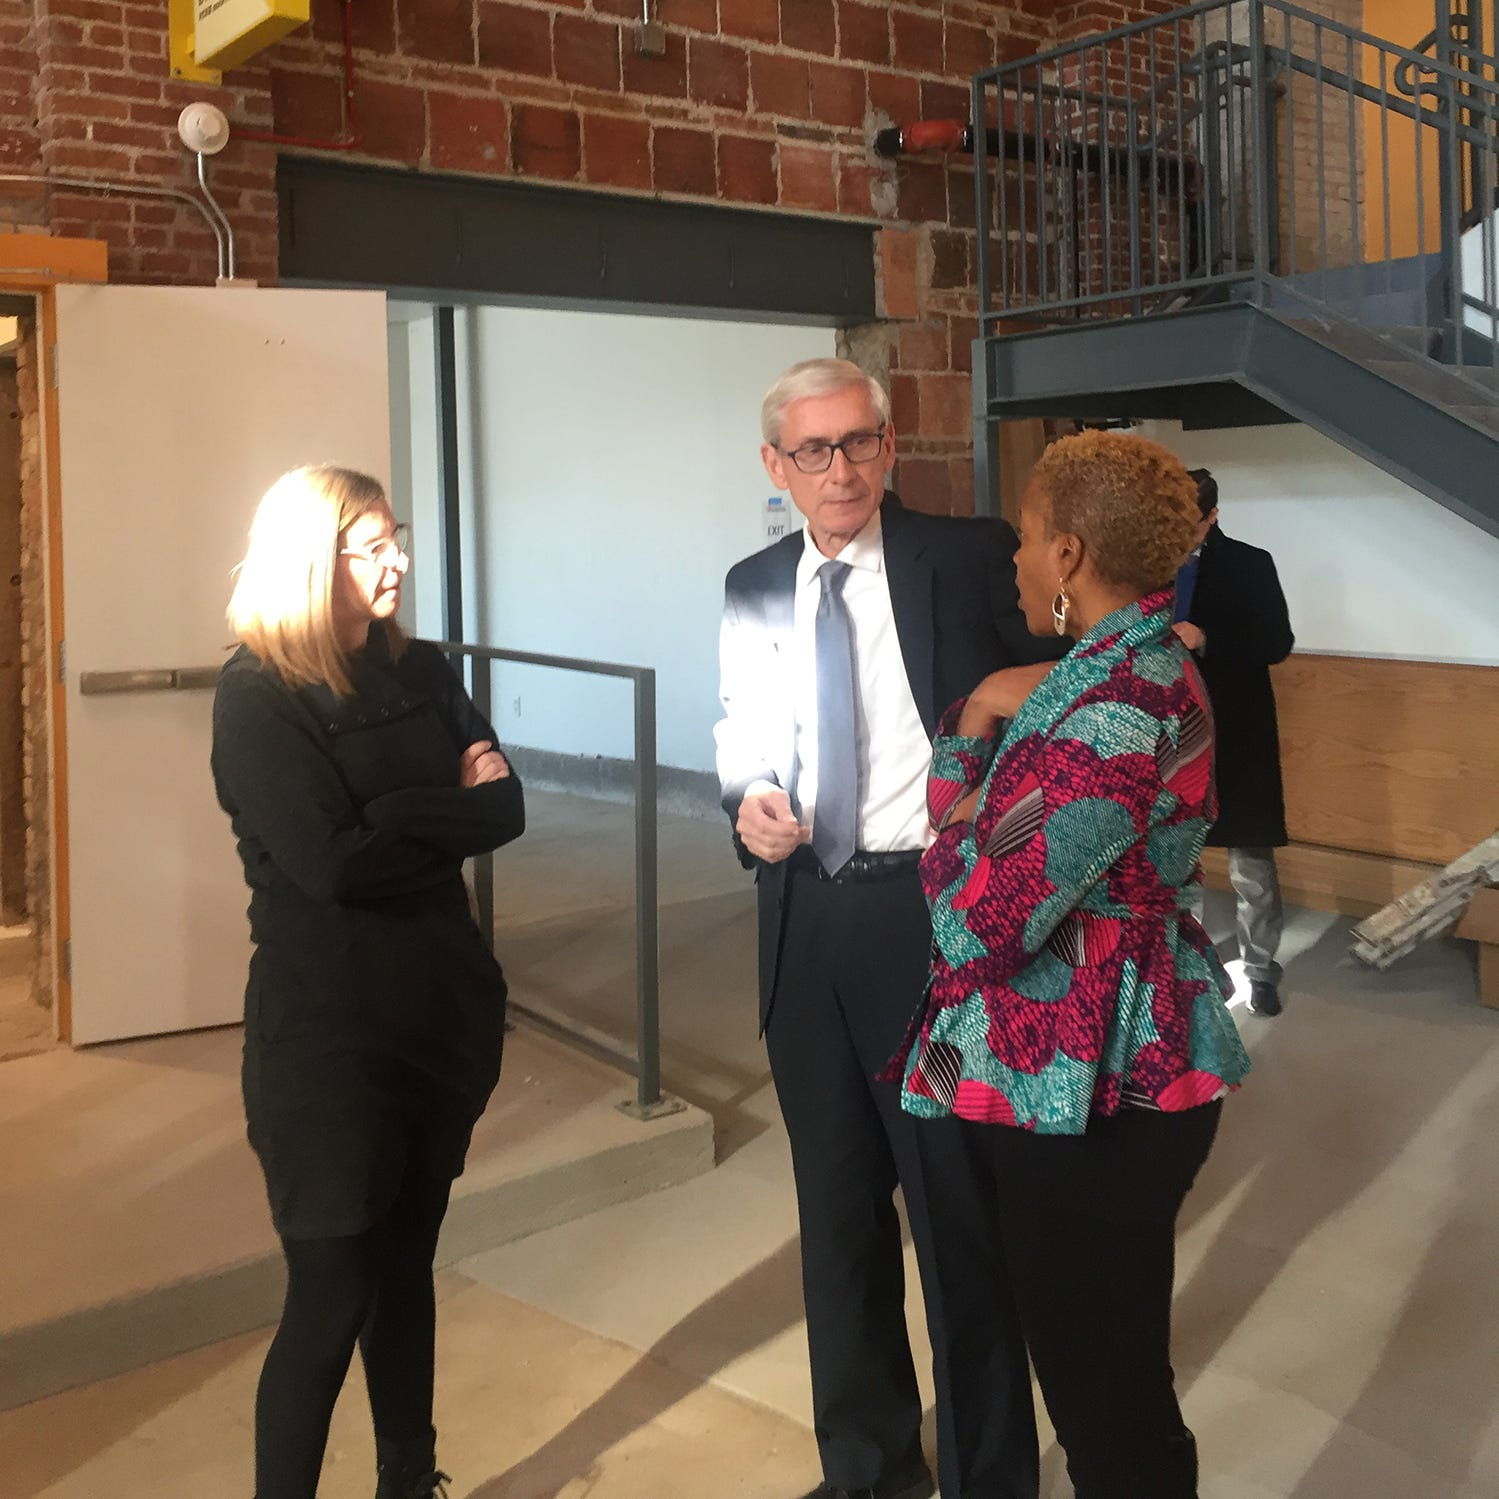 Gov.-elect Tony Evers tours Sherman Phoenix and talks economic development on first visit to Milwaukee since election